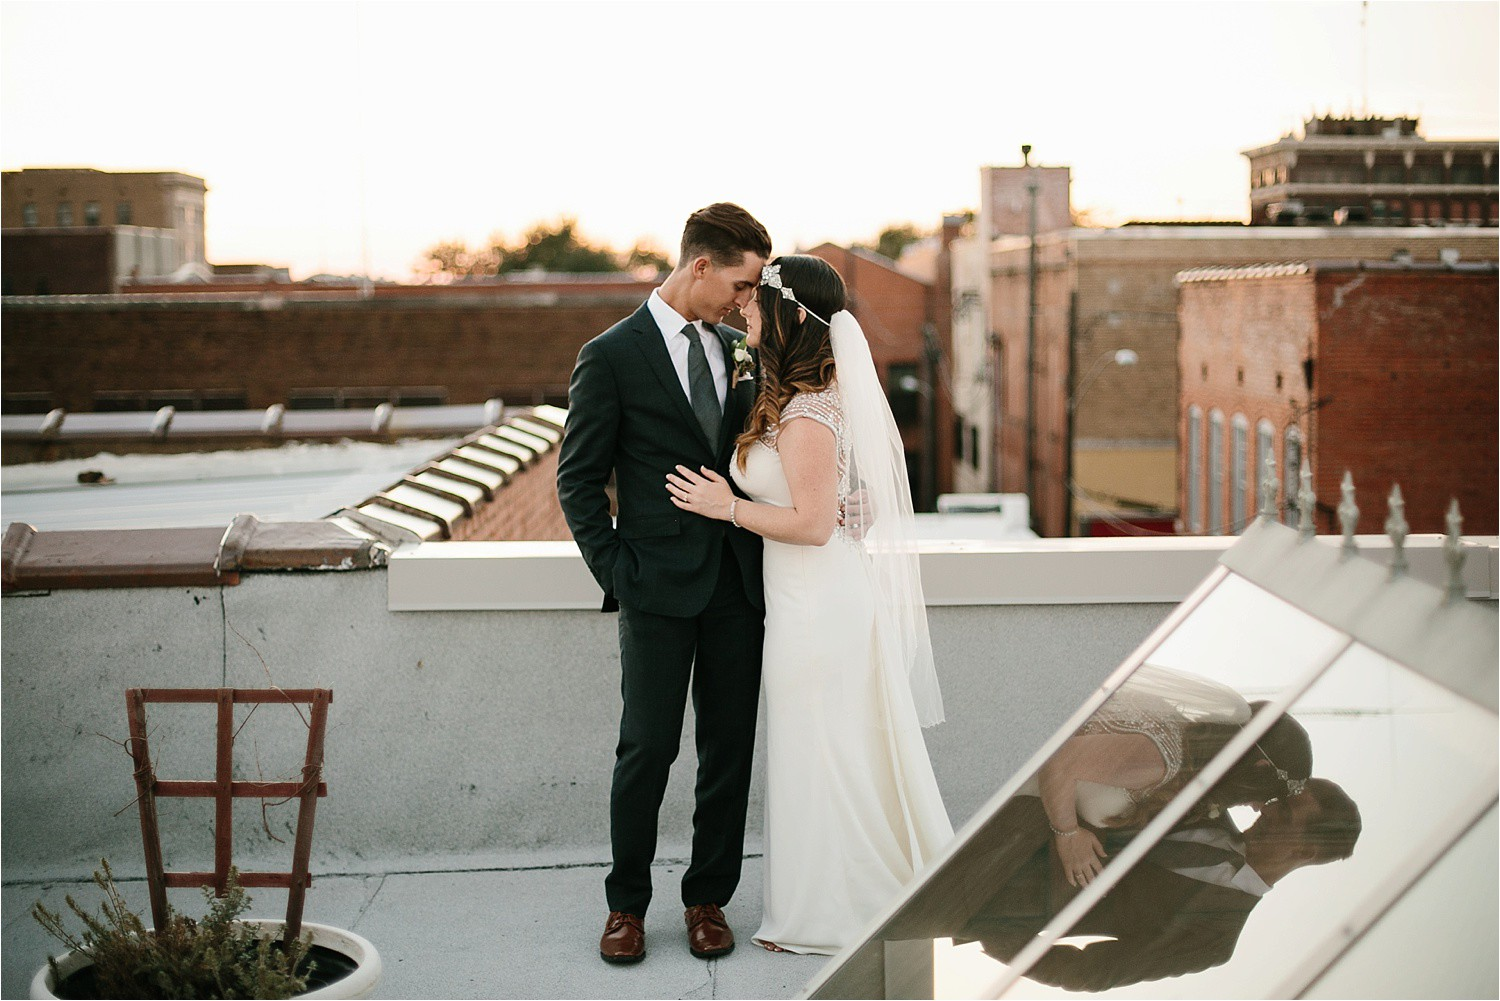 whittney-drew-__-an-intimate-wine-and-navy-wedding-in-an-industrial-venue-at-loft-123-in-paris-tx-by-north-texas-wedding-photographer-rachel-meagan-photography-_-079